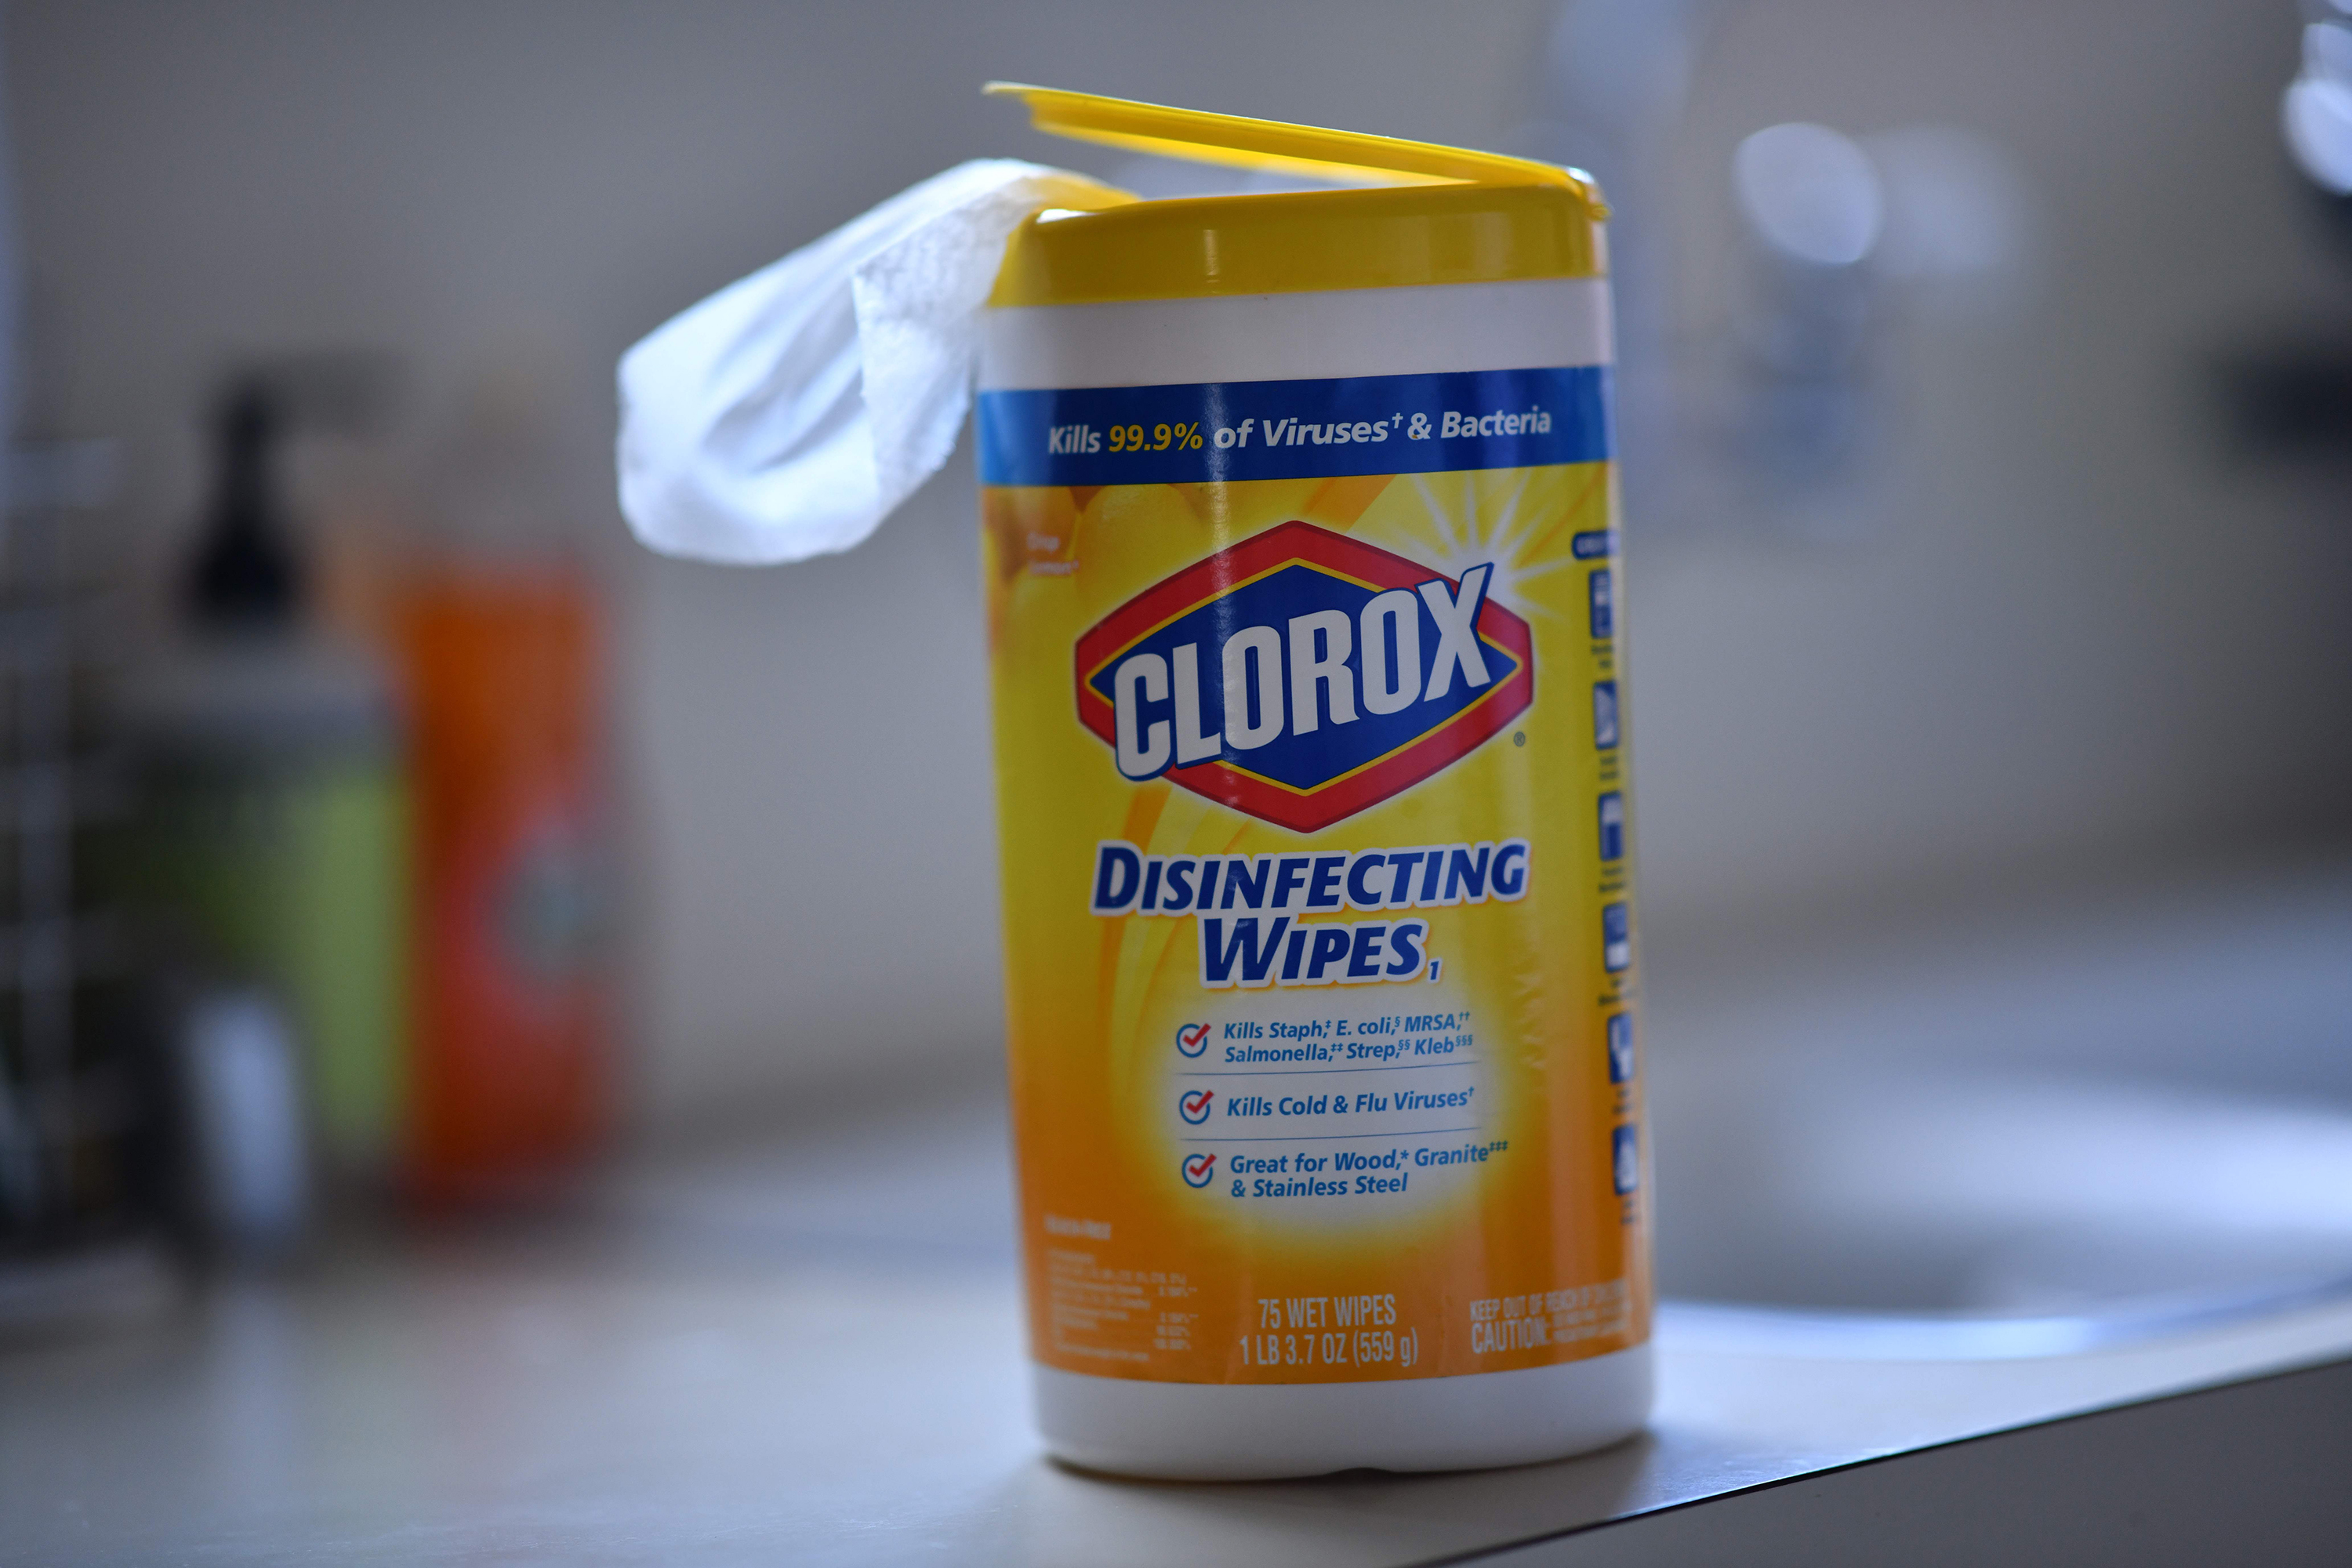 Clorox stock is getting wiped out